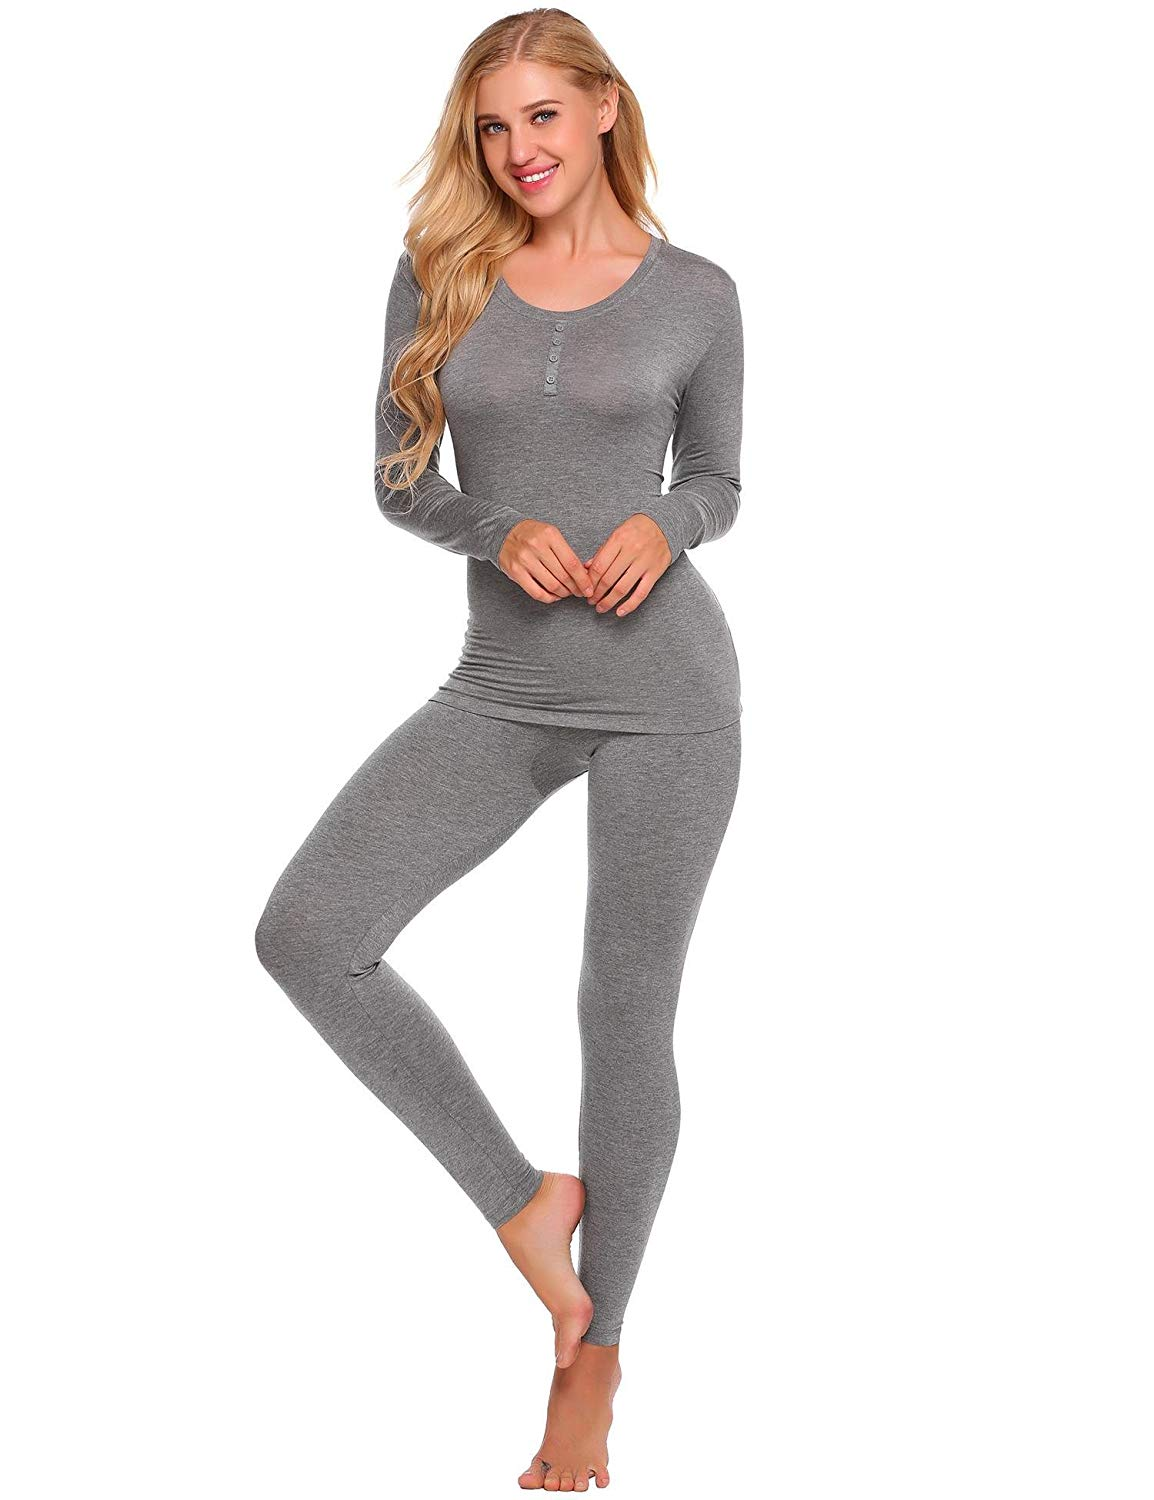 Skylin Women Solid Long Sleeve Tops with Elastic Waist Pants Thermal Underwear Set S-XXL